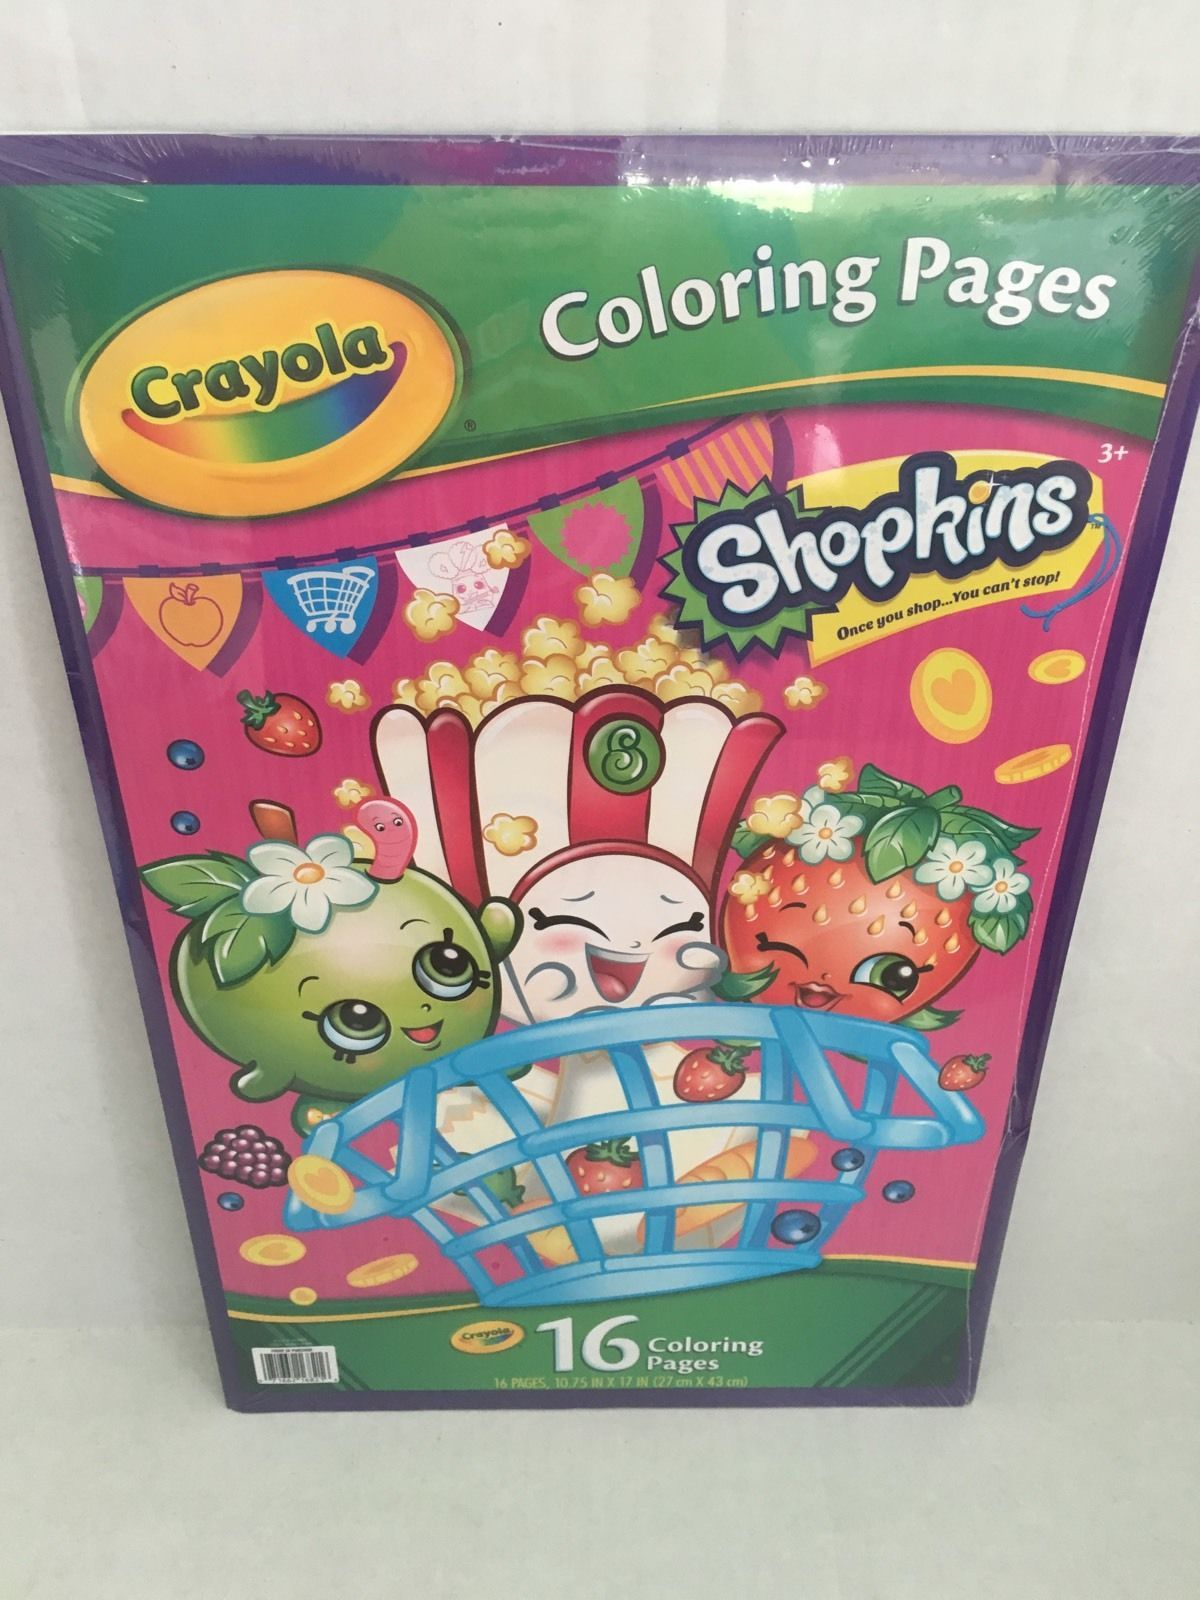 giant coloring pages crayola crayons - photo#19